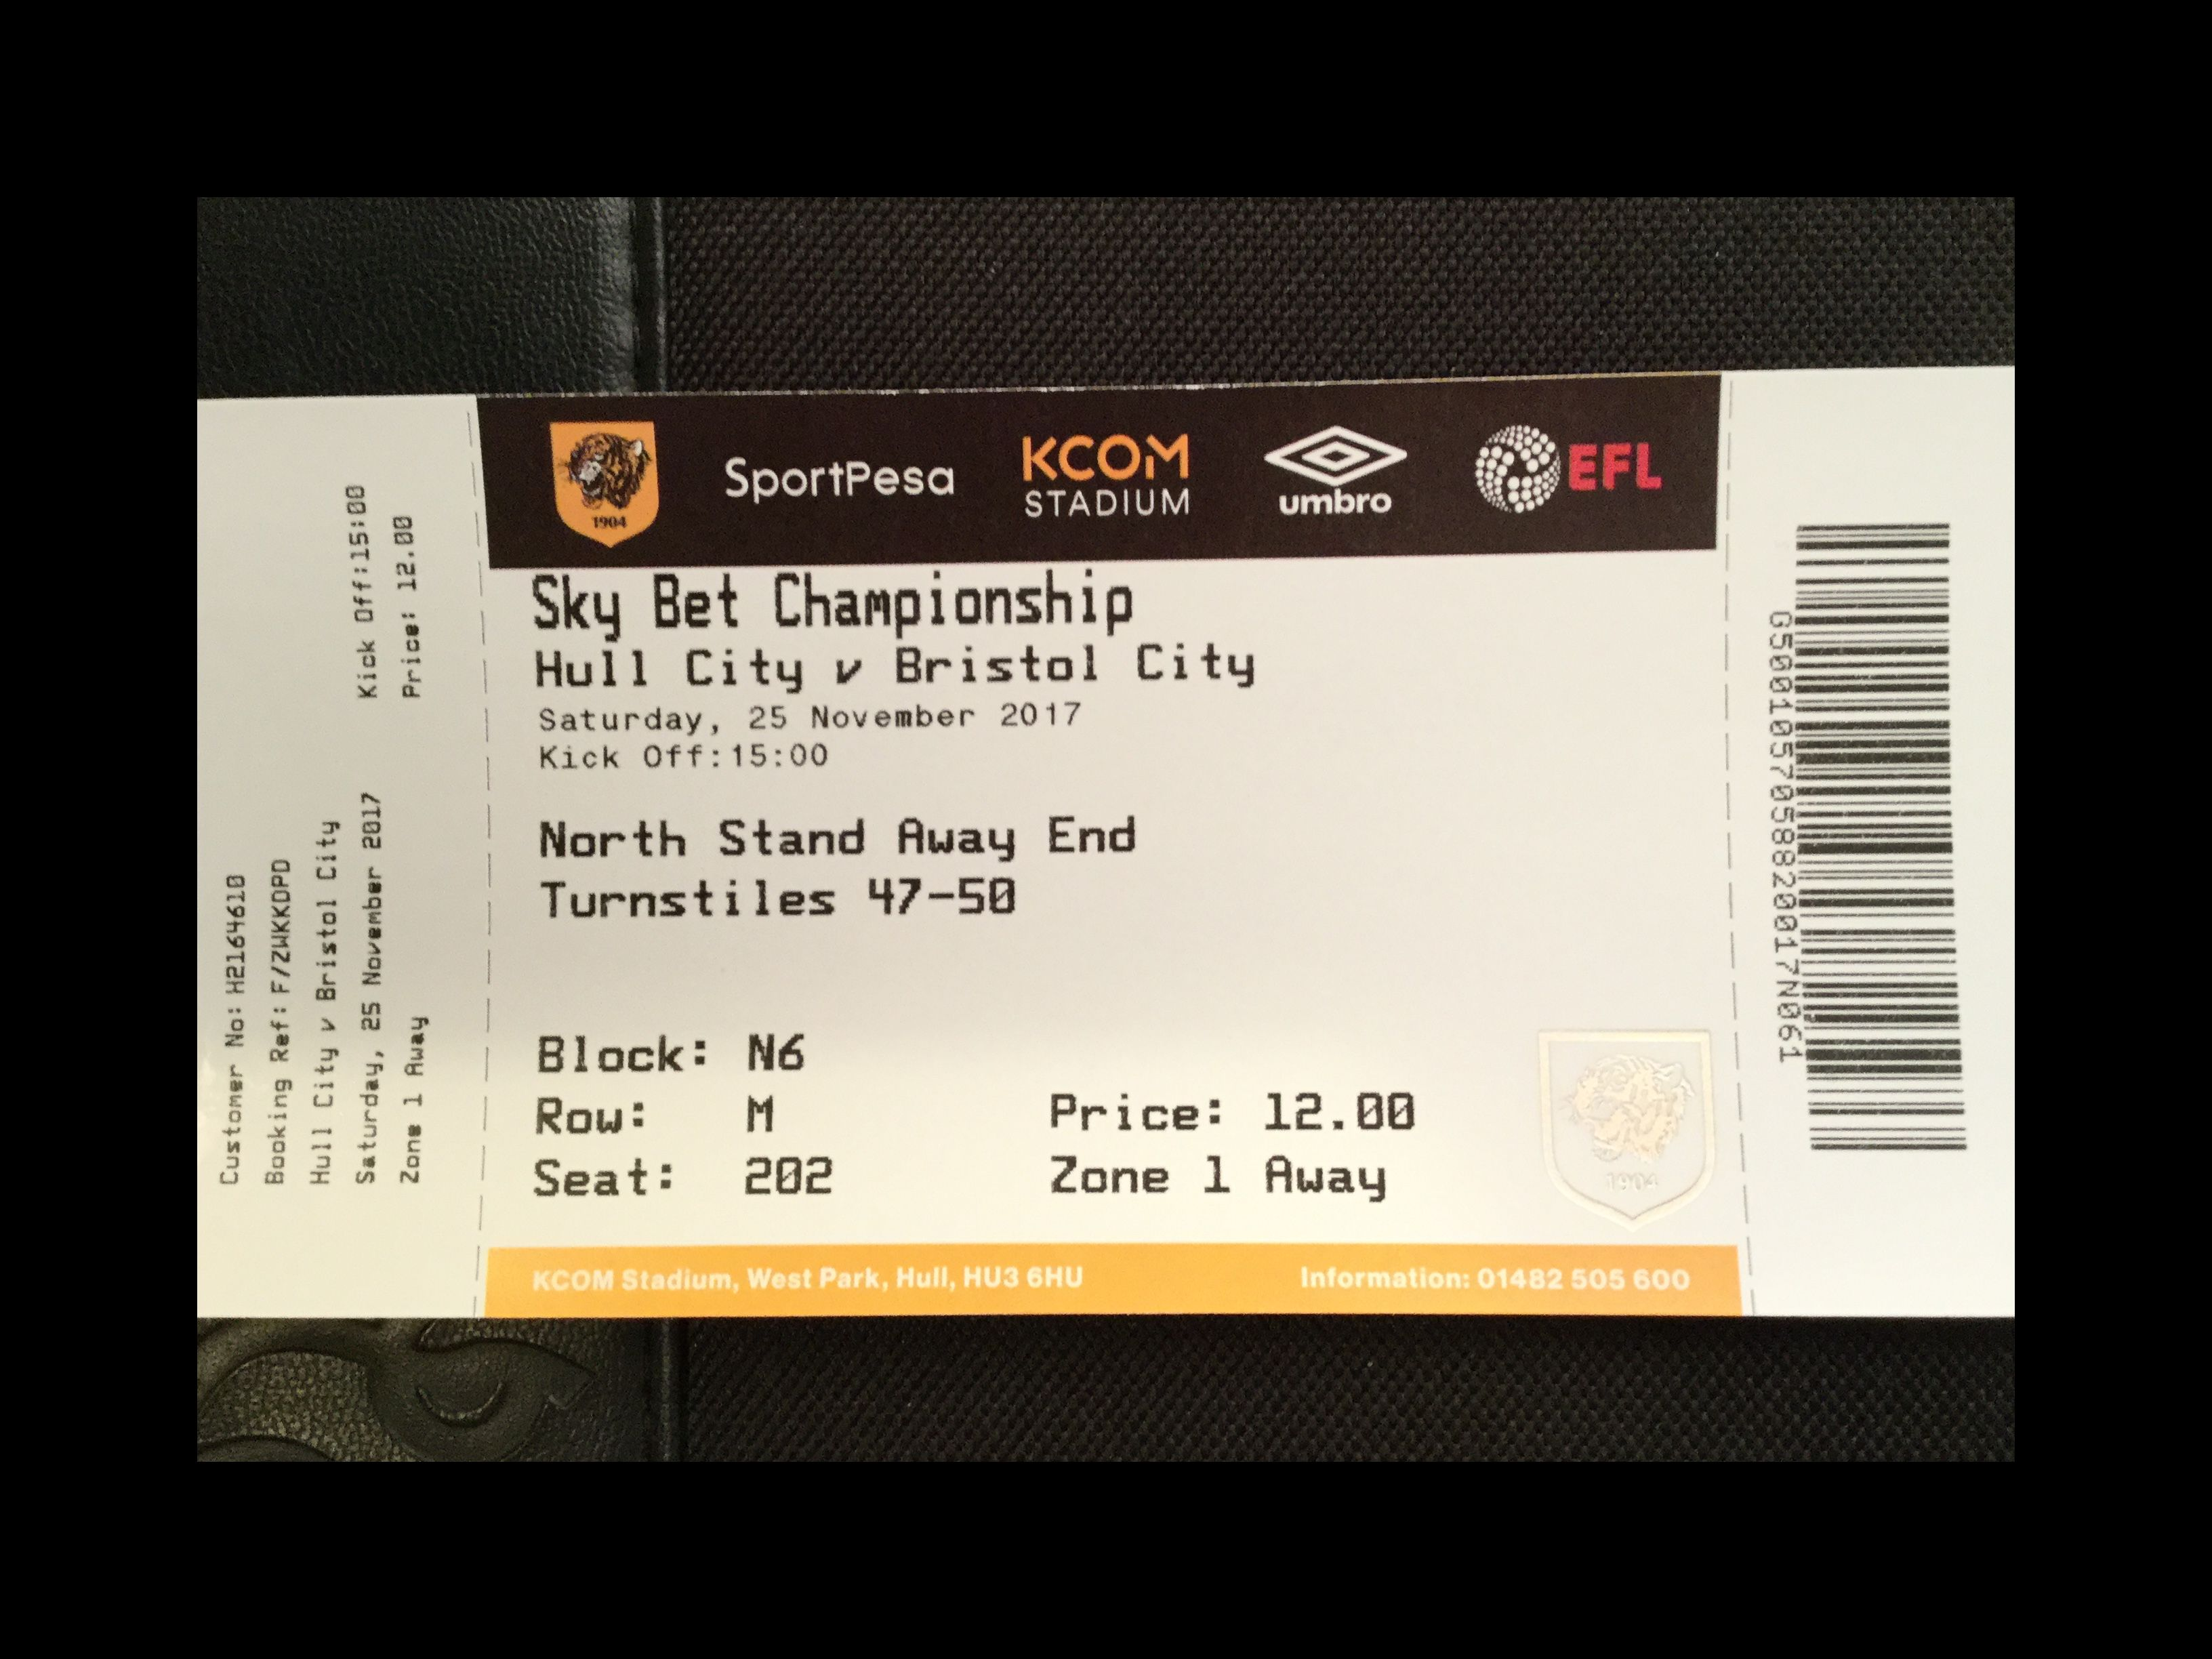 Hull City v Bristol City 25-11-17 Ticket